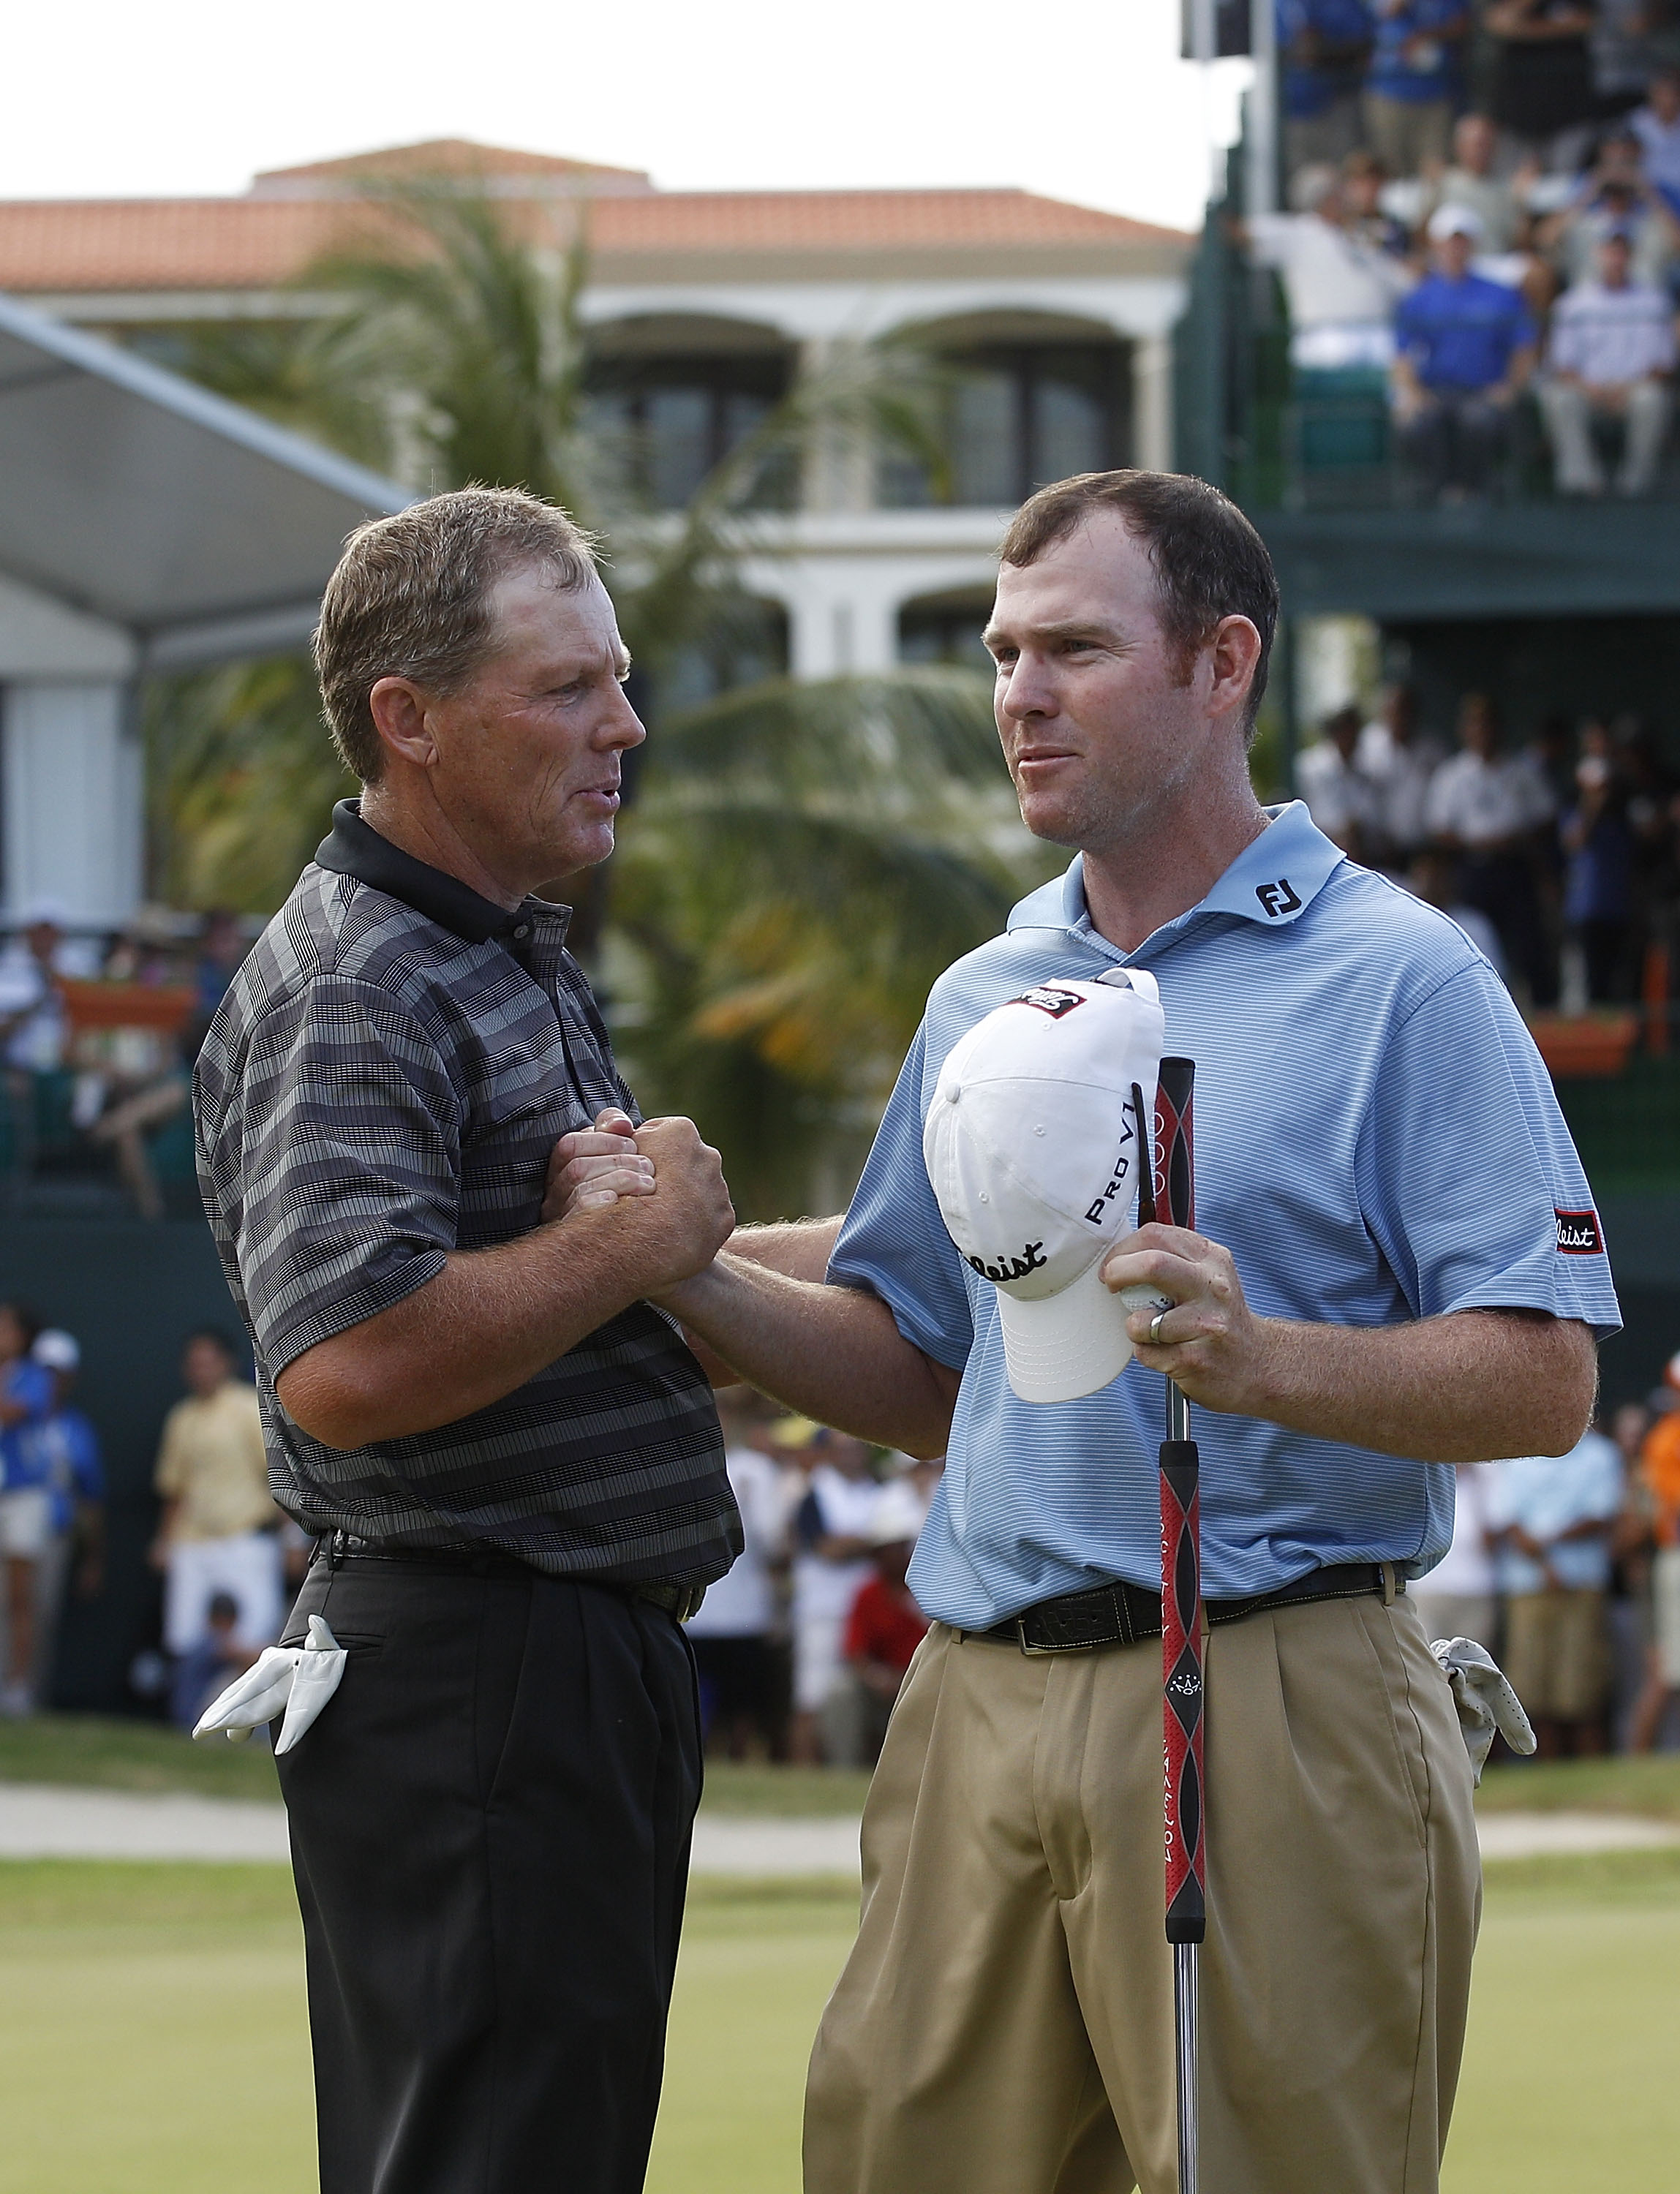 RIO GRANDE, PR - MARCH 13:  Michael Bradley (L) shakes hands with Troy Matteson whom he beat in a one hole playoff to win the Puerto Rico Open presented by seepuertorico.com at Trump International Golf Club on March 13, 2011 in Rio Grande, Puerto Rico.  (